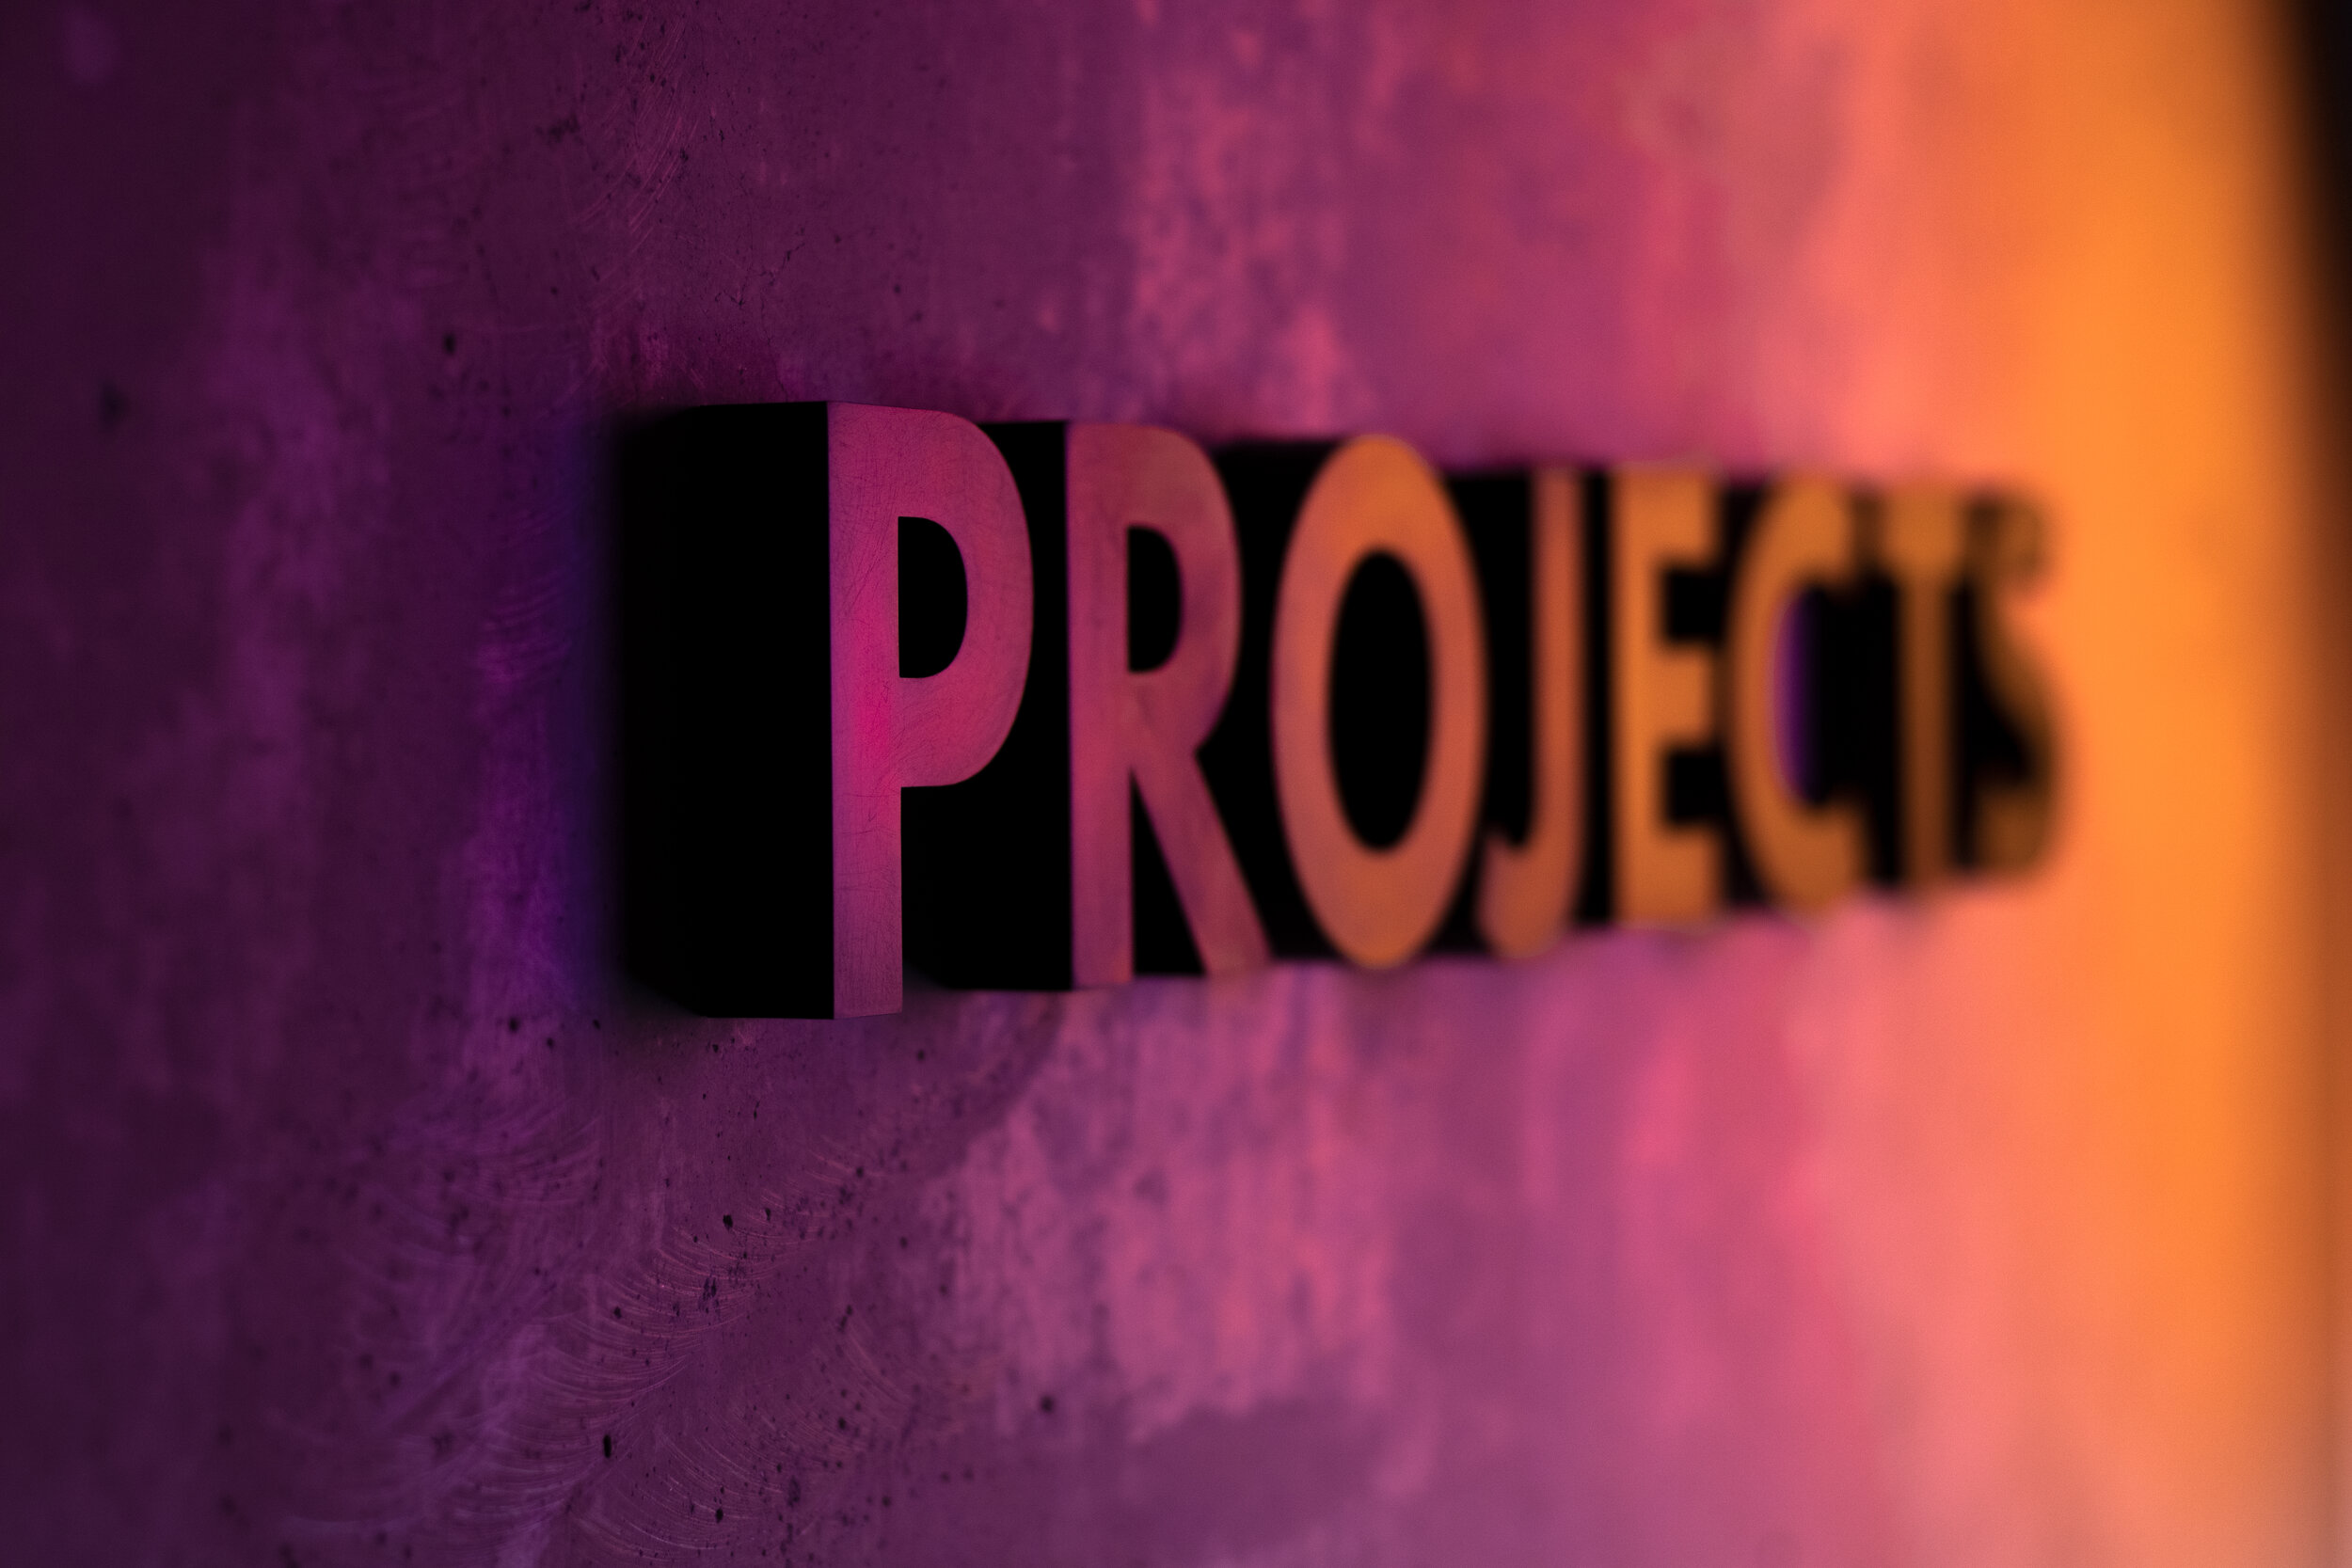 Our Projects - Get a glimpse on what we are doing on our own besides consulting work.